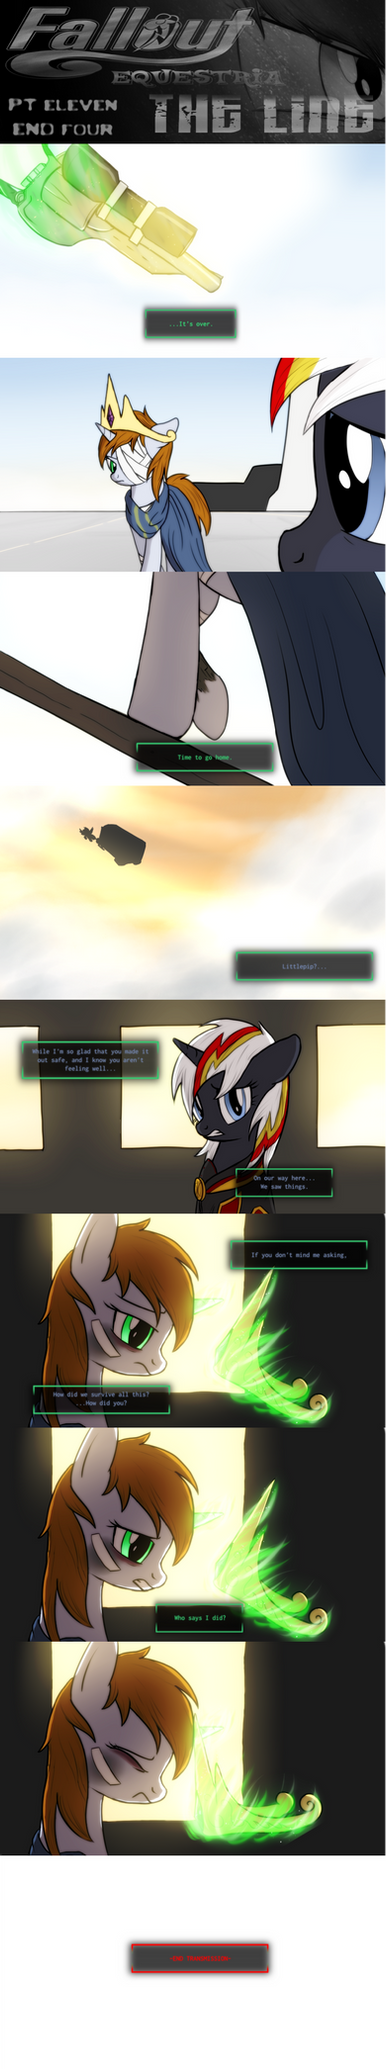 COMMISSION - Fallout Equestria: The Line ENDING 4 by Brisineo